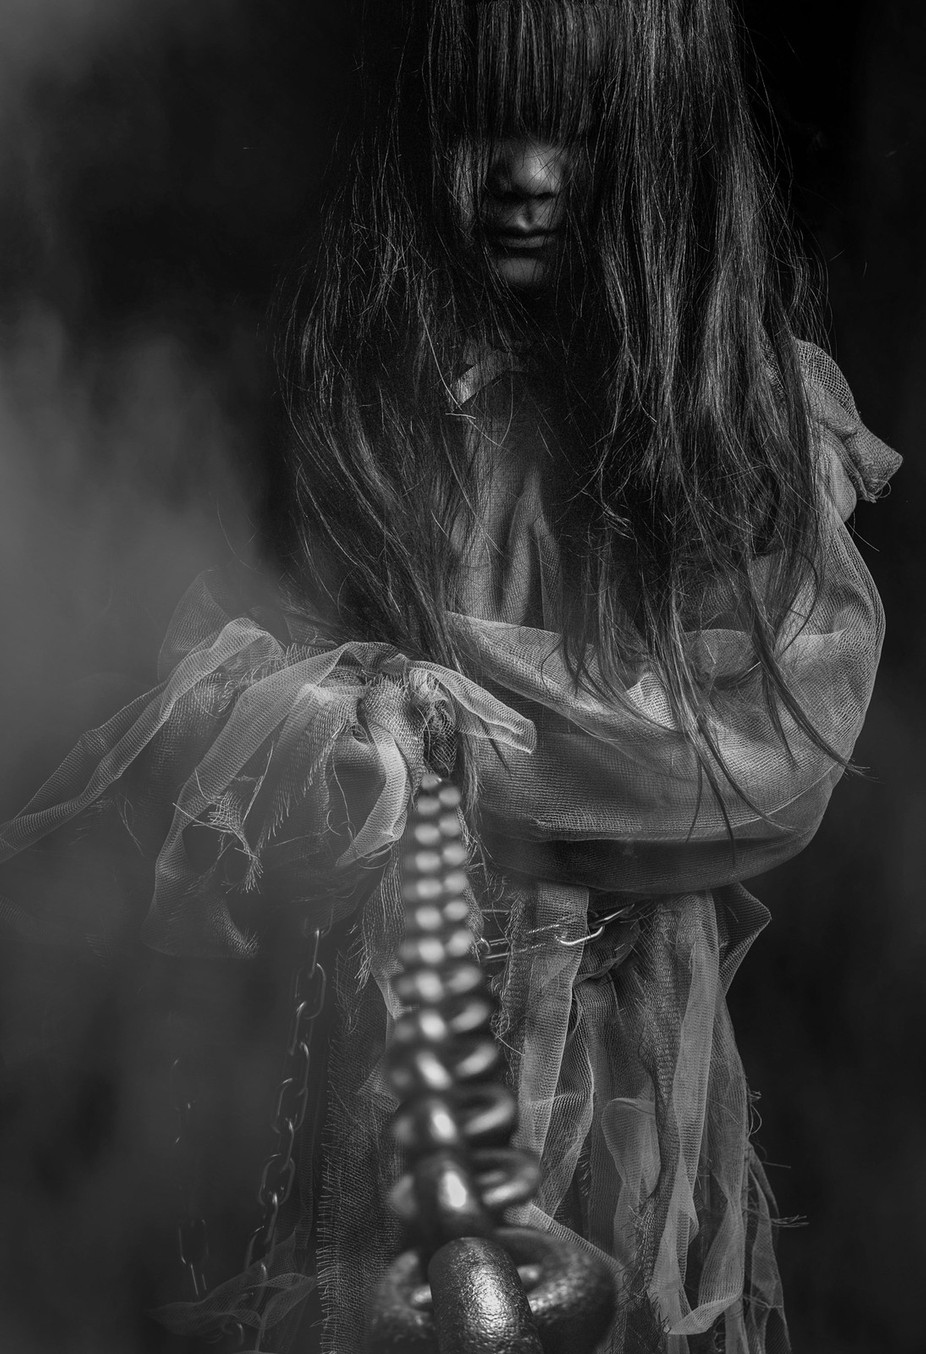 IMG_9626b bw by mikitabatasauce - Halloween Photo Contest 2017